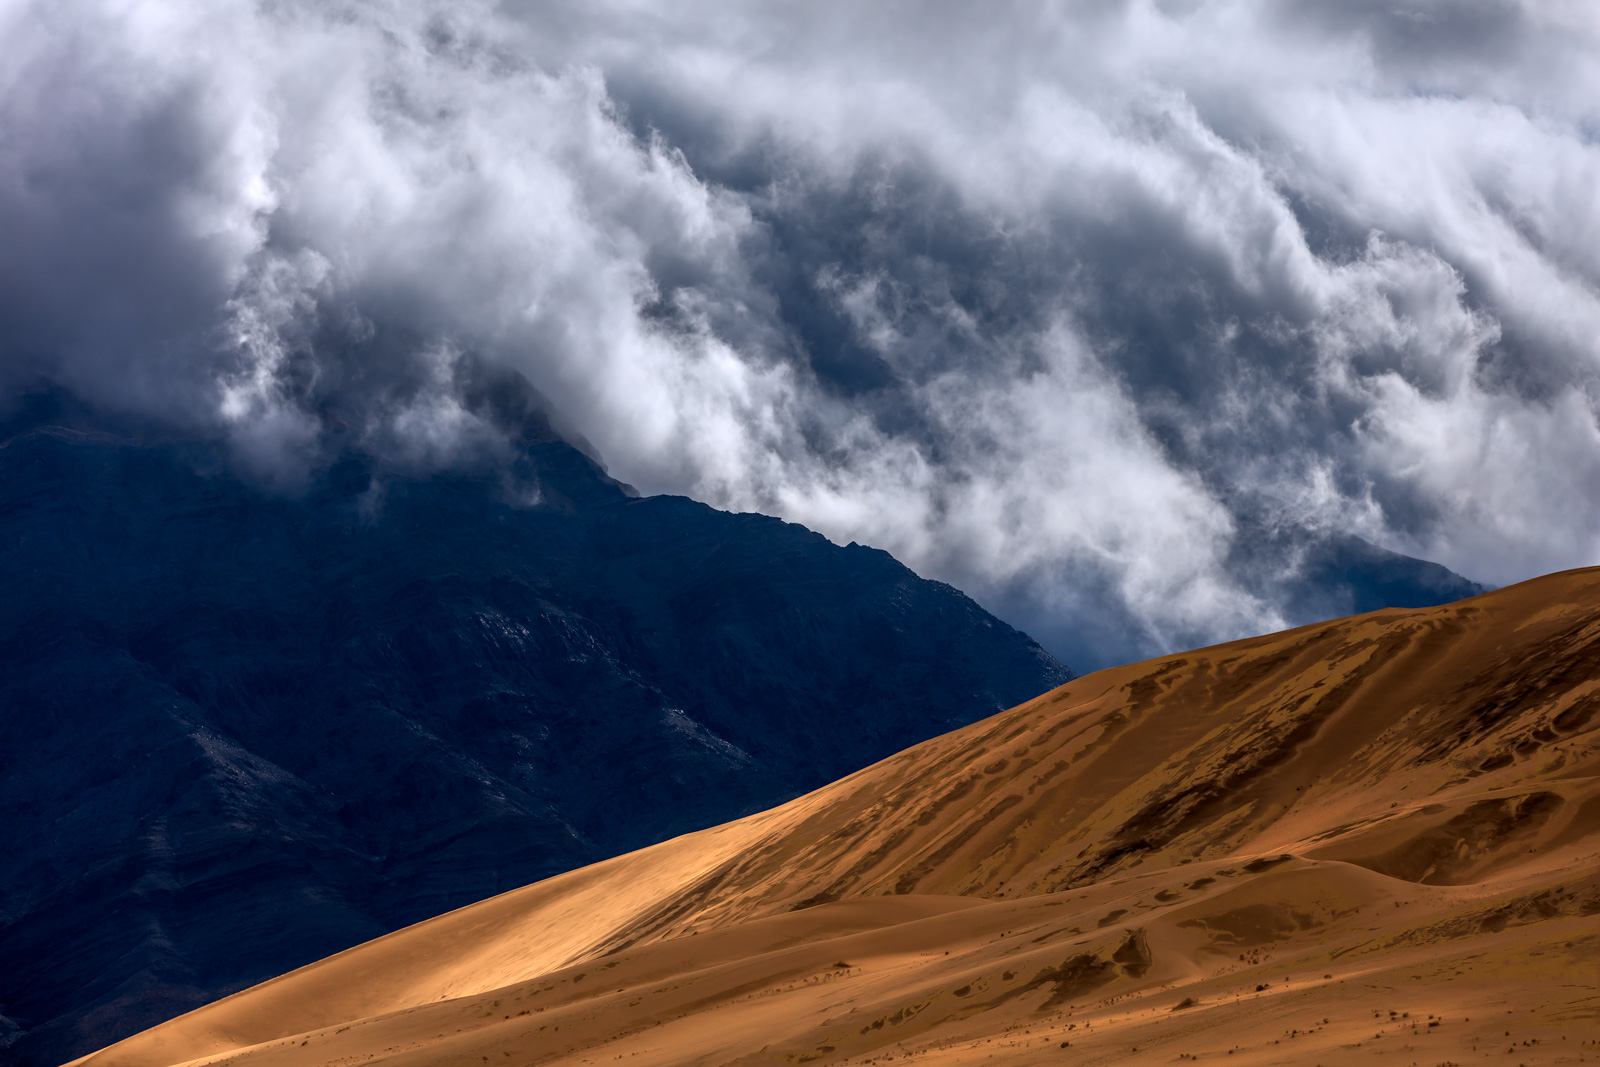 California, Death Valley, Eureka, Dunes, Clouds, Storm, photo